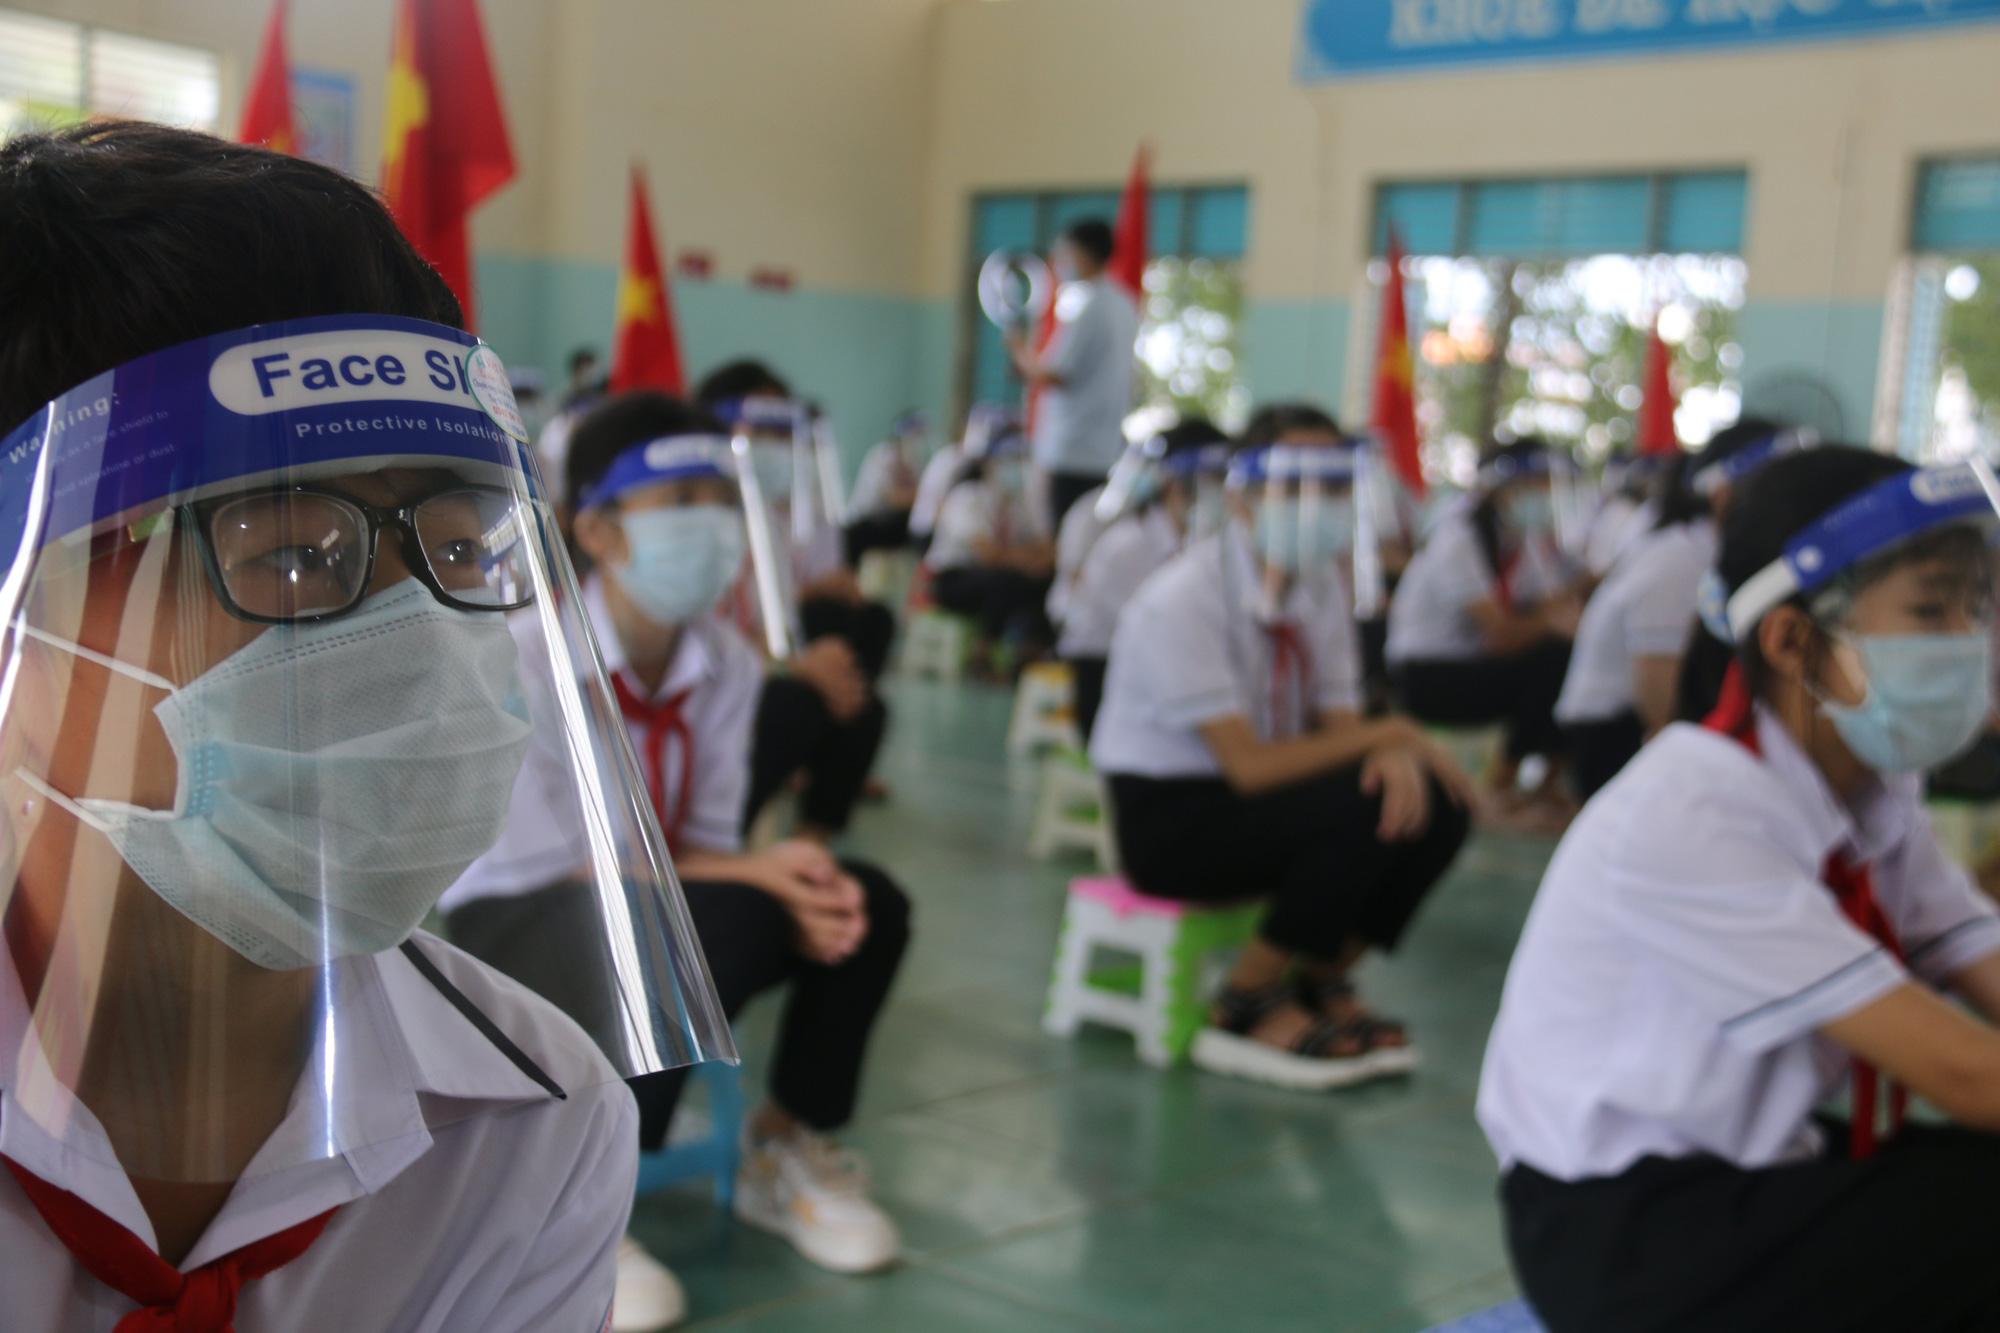 Students attend a school year opening ceremony in Krong No District, Dak Nong Province, September 5, 2021. Photo: Duong Phong / Tuoi Tre